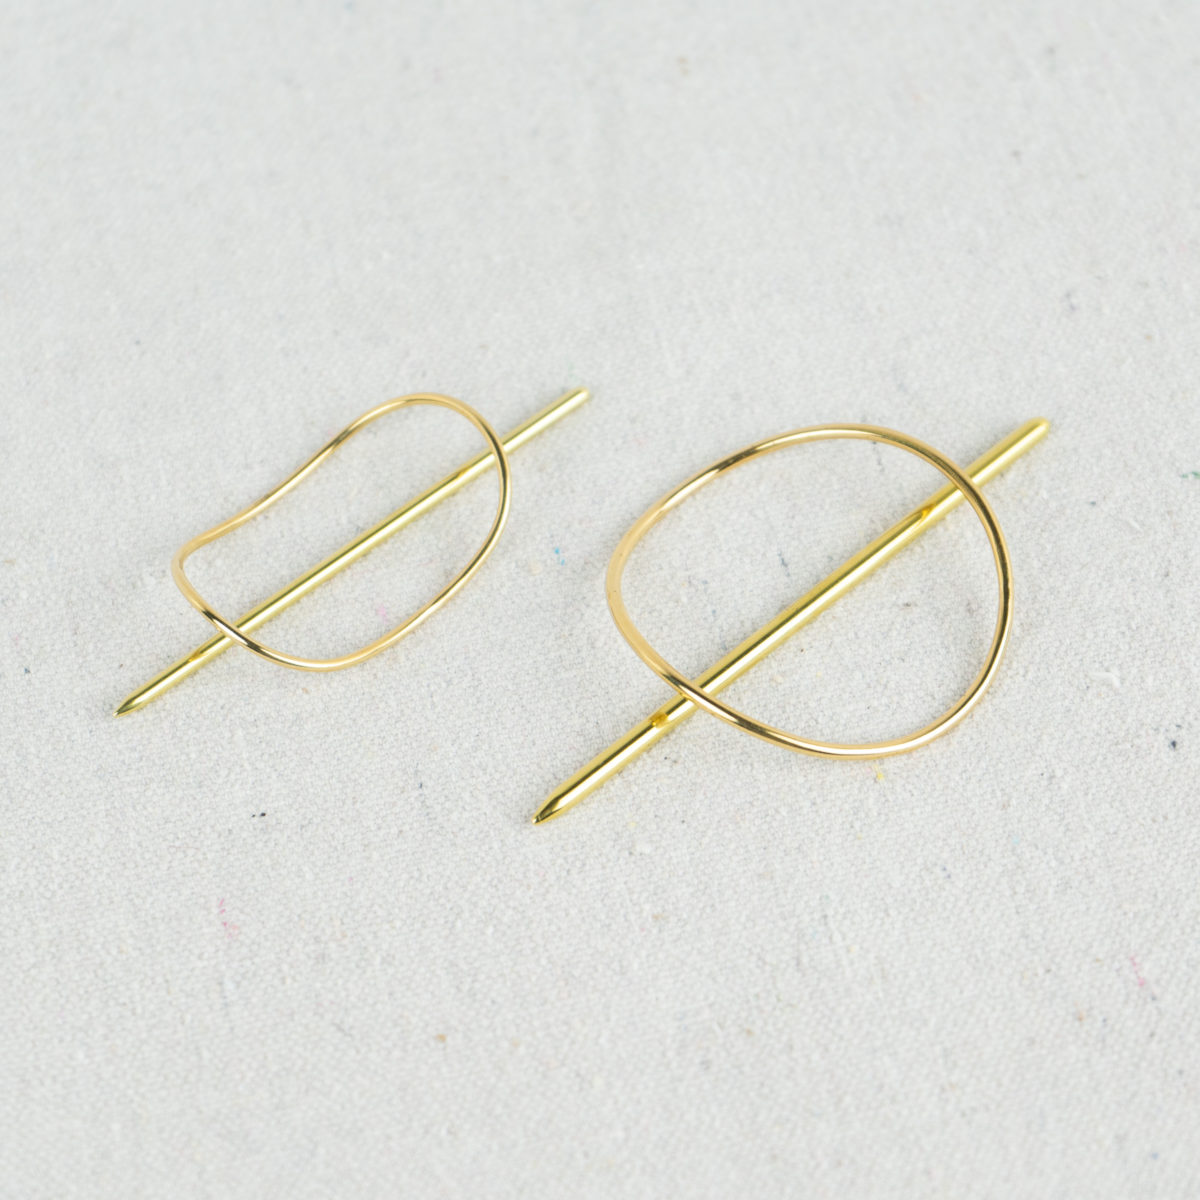 brass-hair-pins